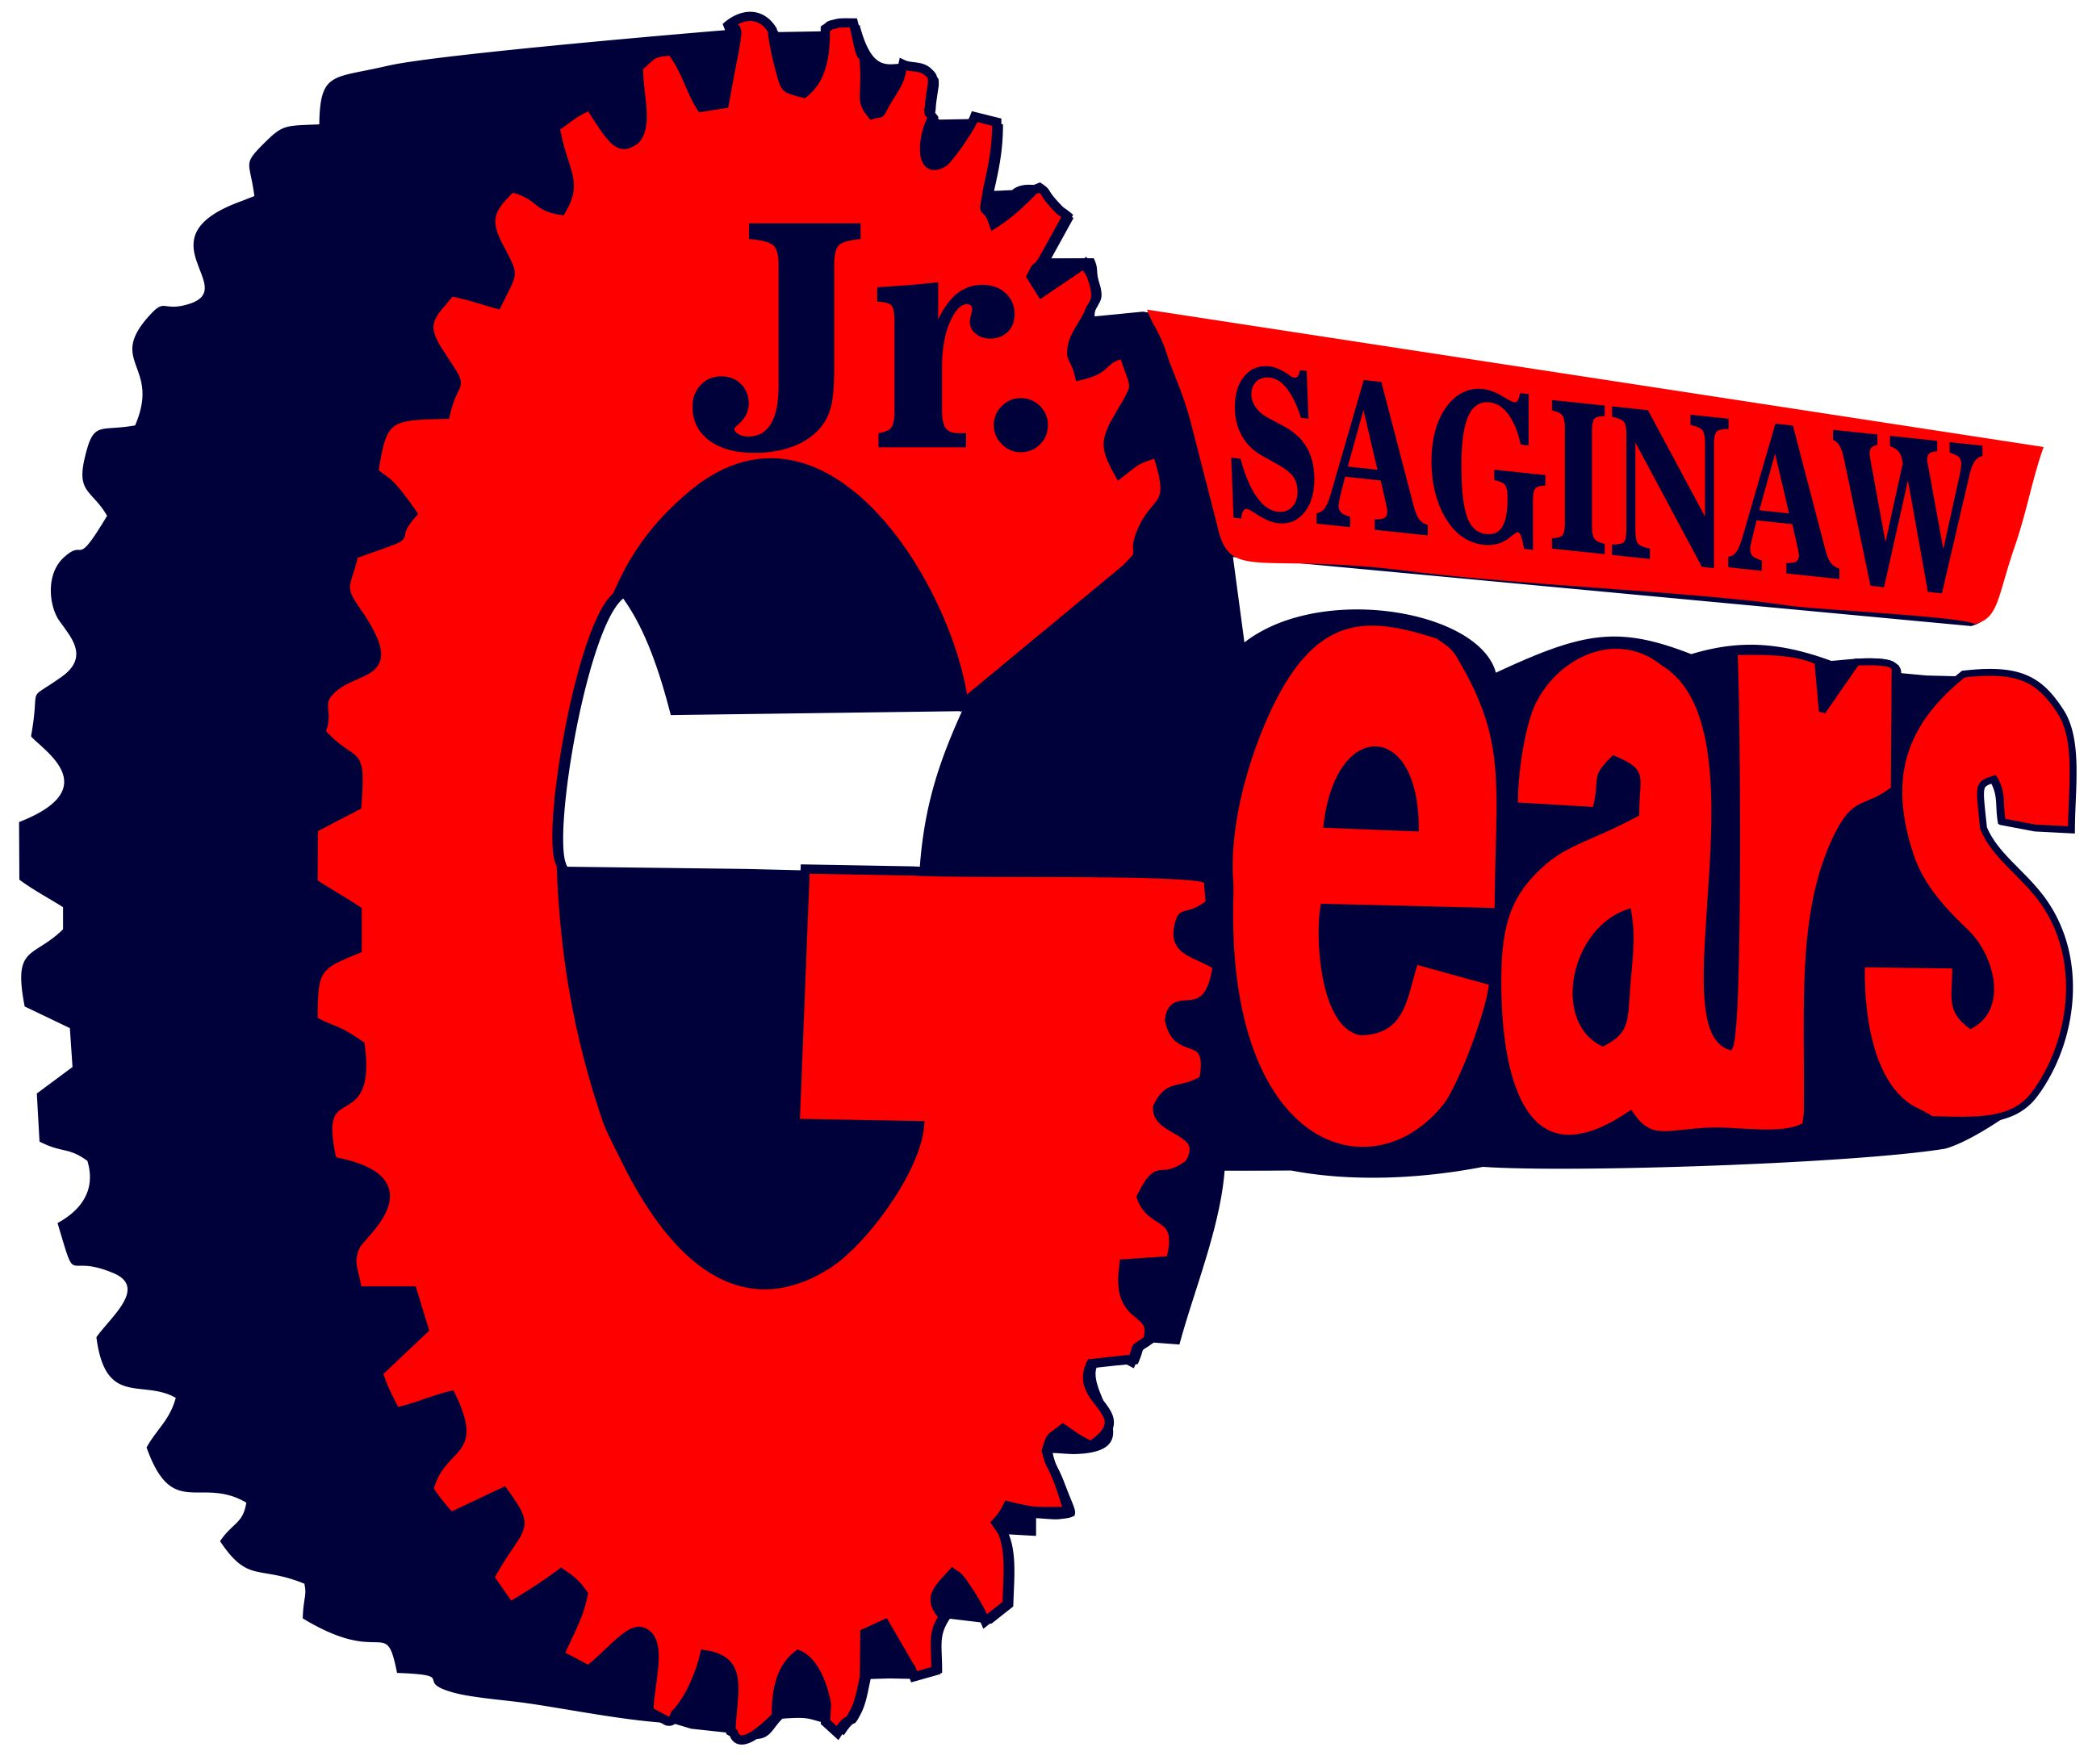 Jr gears logo white background